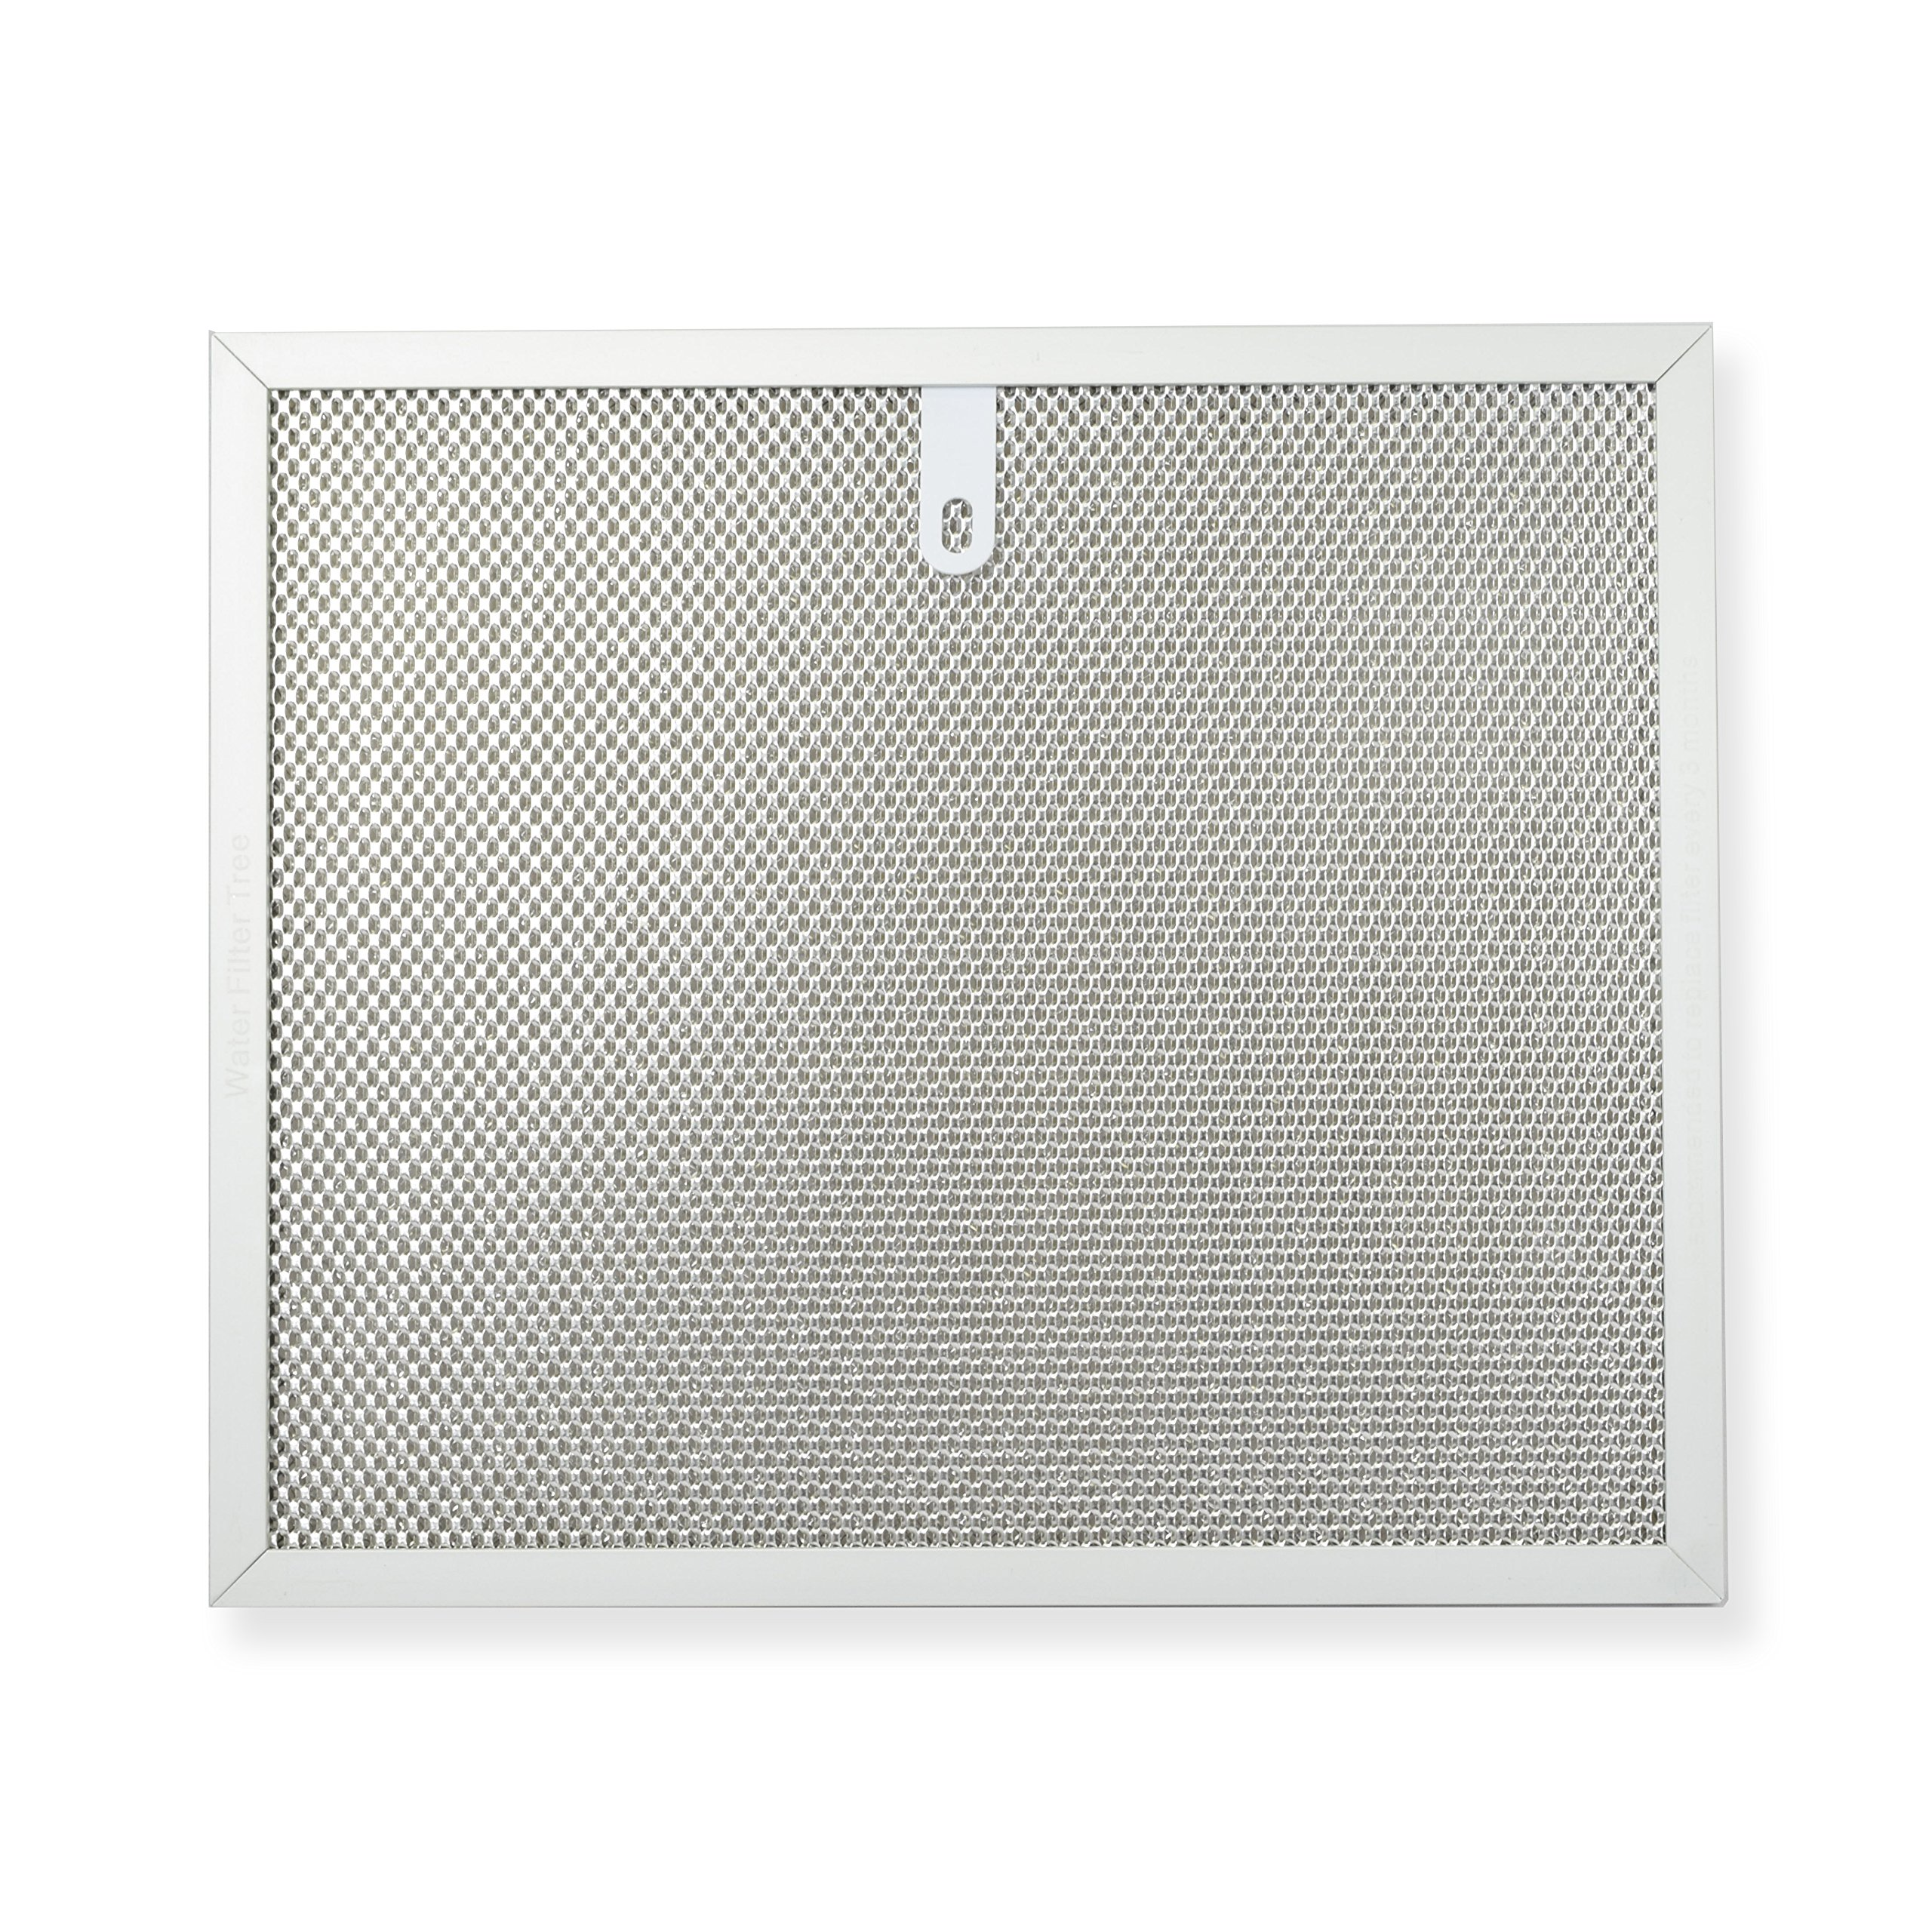 Range Hood Filter With 3 Layer Aluminium Mesh 9 811 7